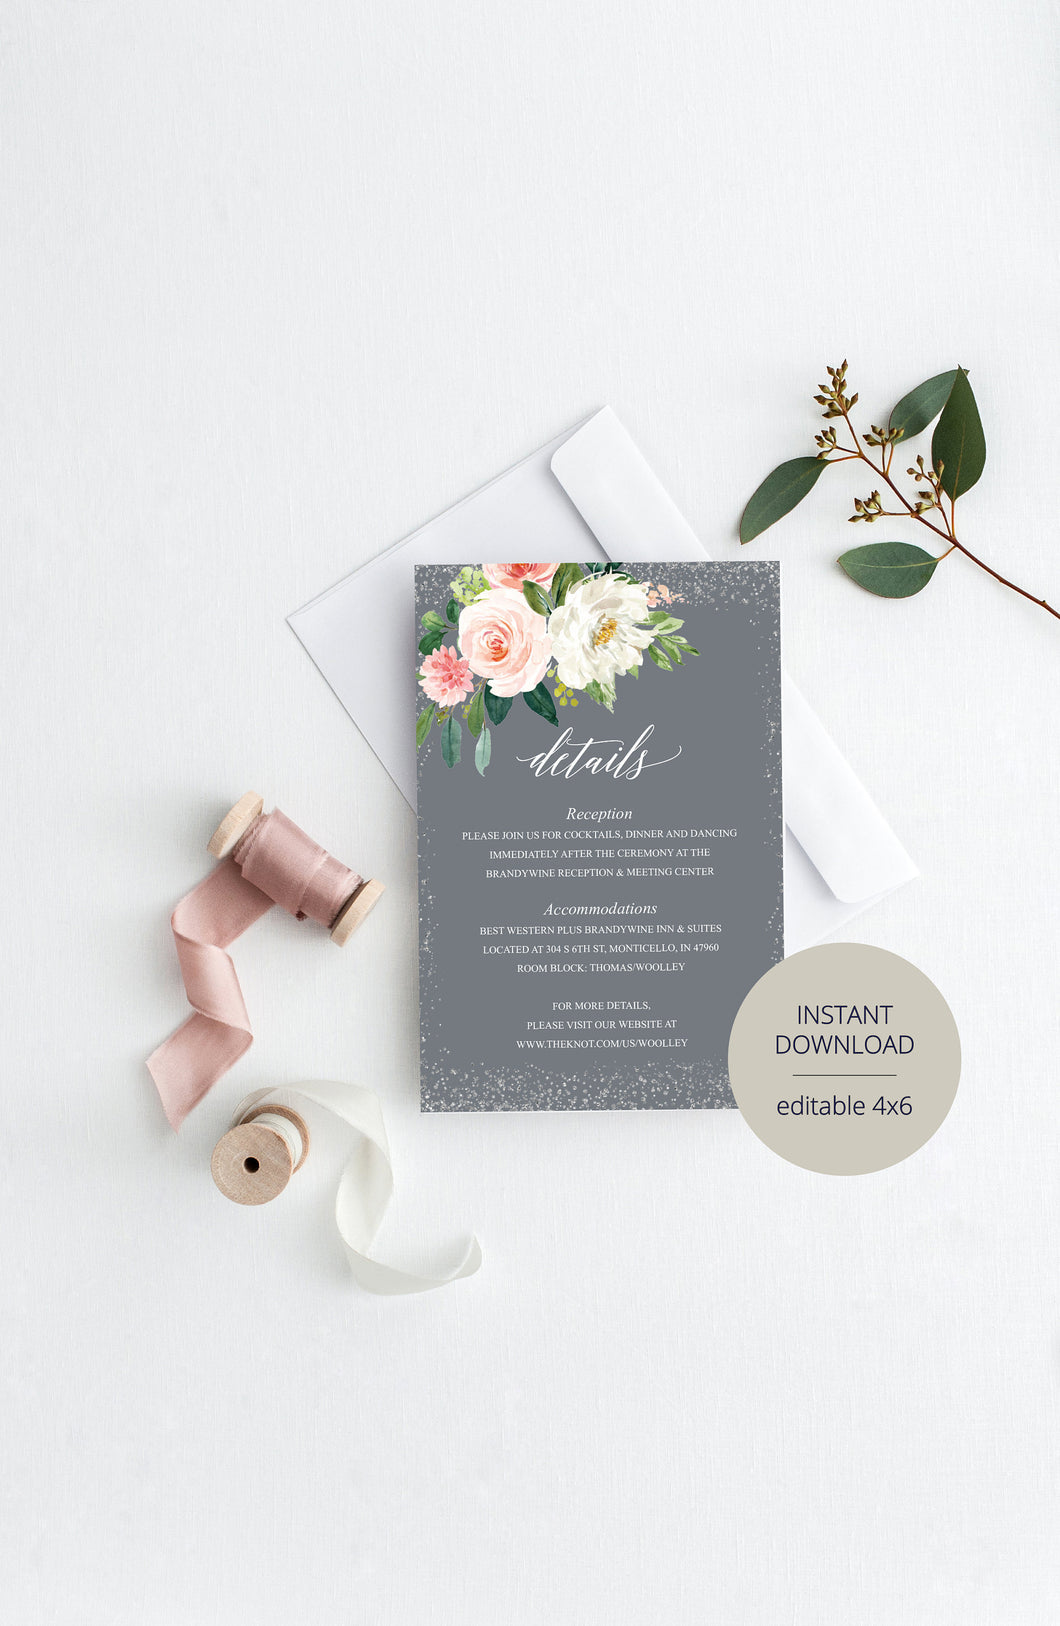 Wedding Details Card Template, Instant Download, Information Card, Wedding Info Card, Gray Silver Wedding,Details Template,Floral   - ELOISE